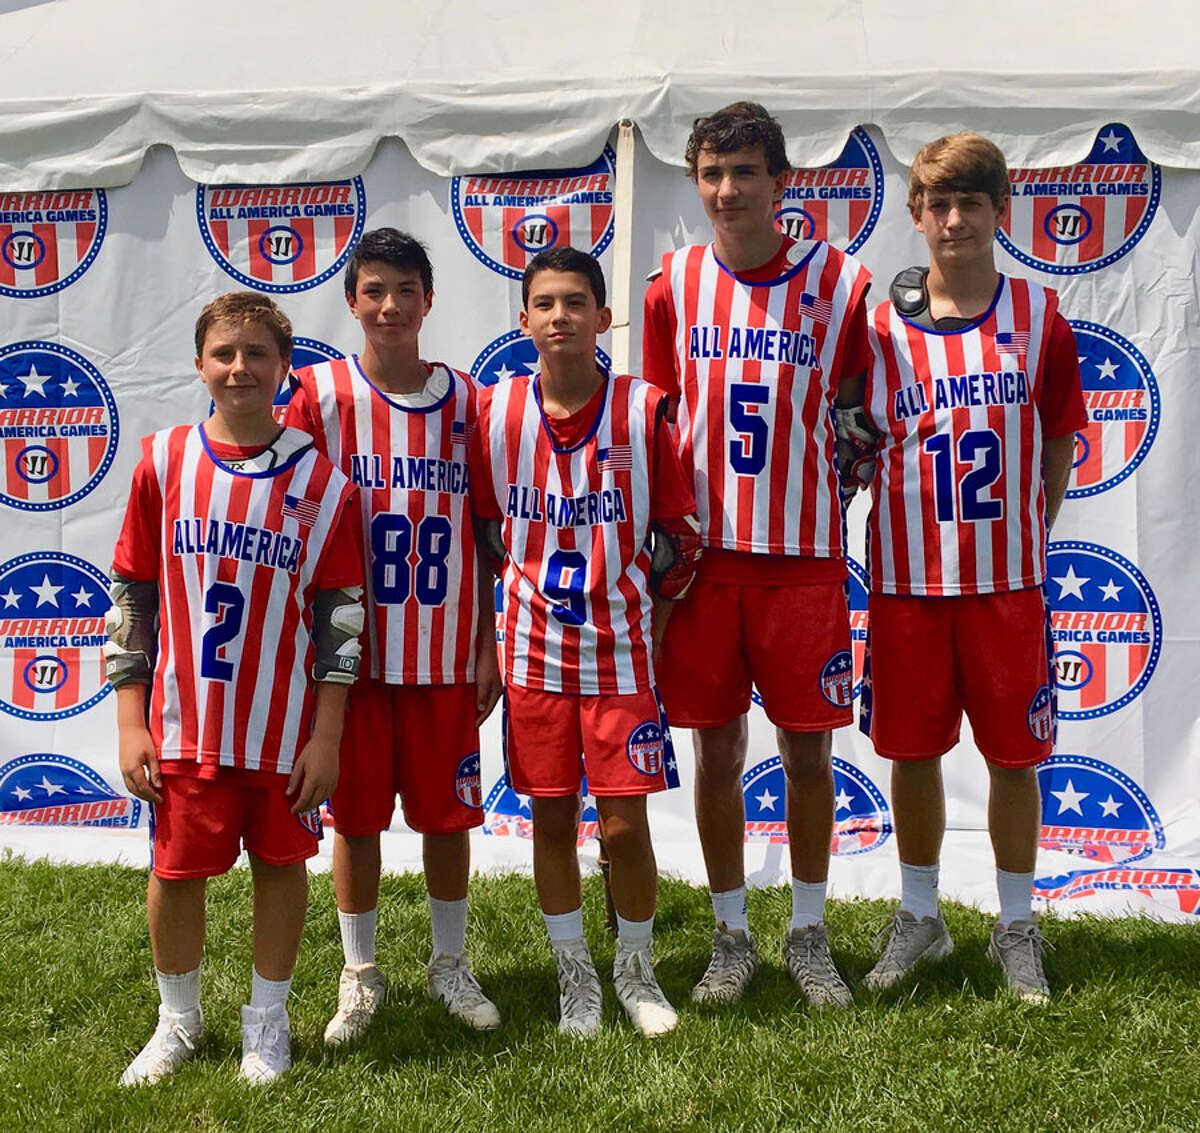 The Warrior Tri-State team had a New Canaan flavor, as five local players were on the roster for the Warrior All-American Games in July. From left are, Ryan Connelly (2), Cameron Wietfeldt (88), Griffen Getner (9), Alex Sotirhos (5), and Holden Busby (12).